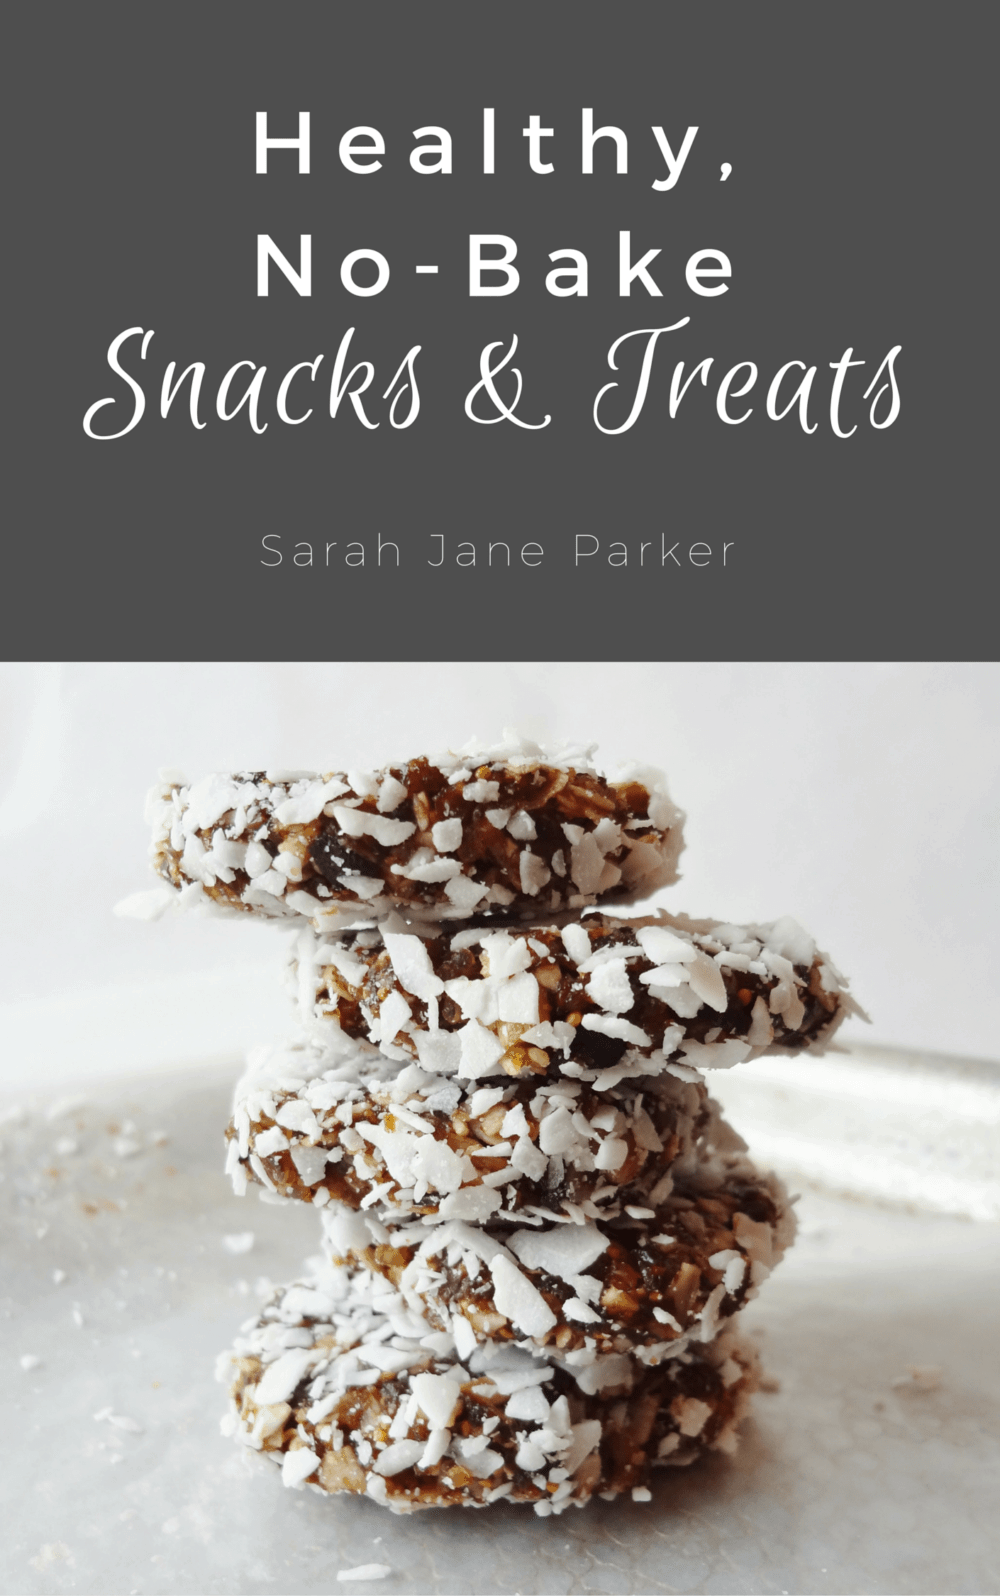 Healthy, No-Bake Snacks & Treats book